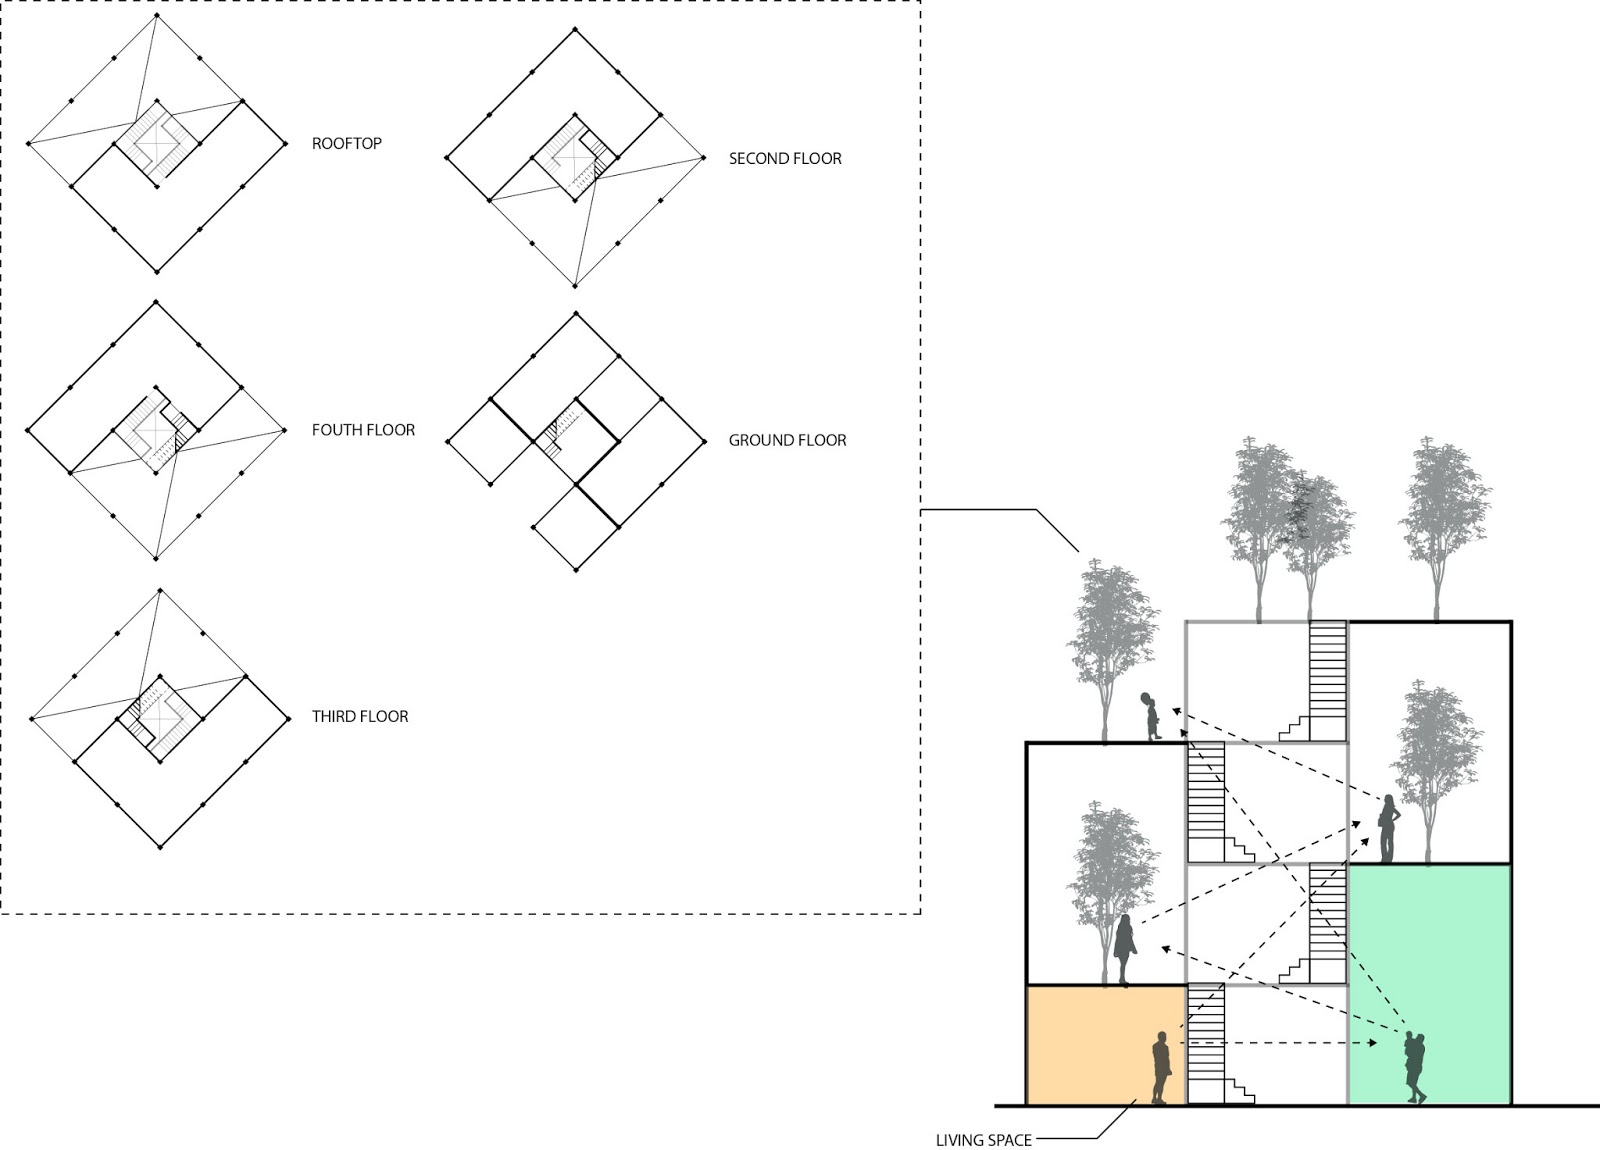 Erotics Of Architecture Thai S Proposal Green Communal